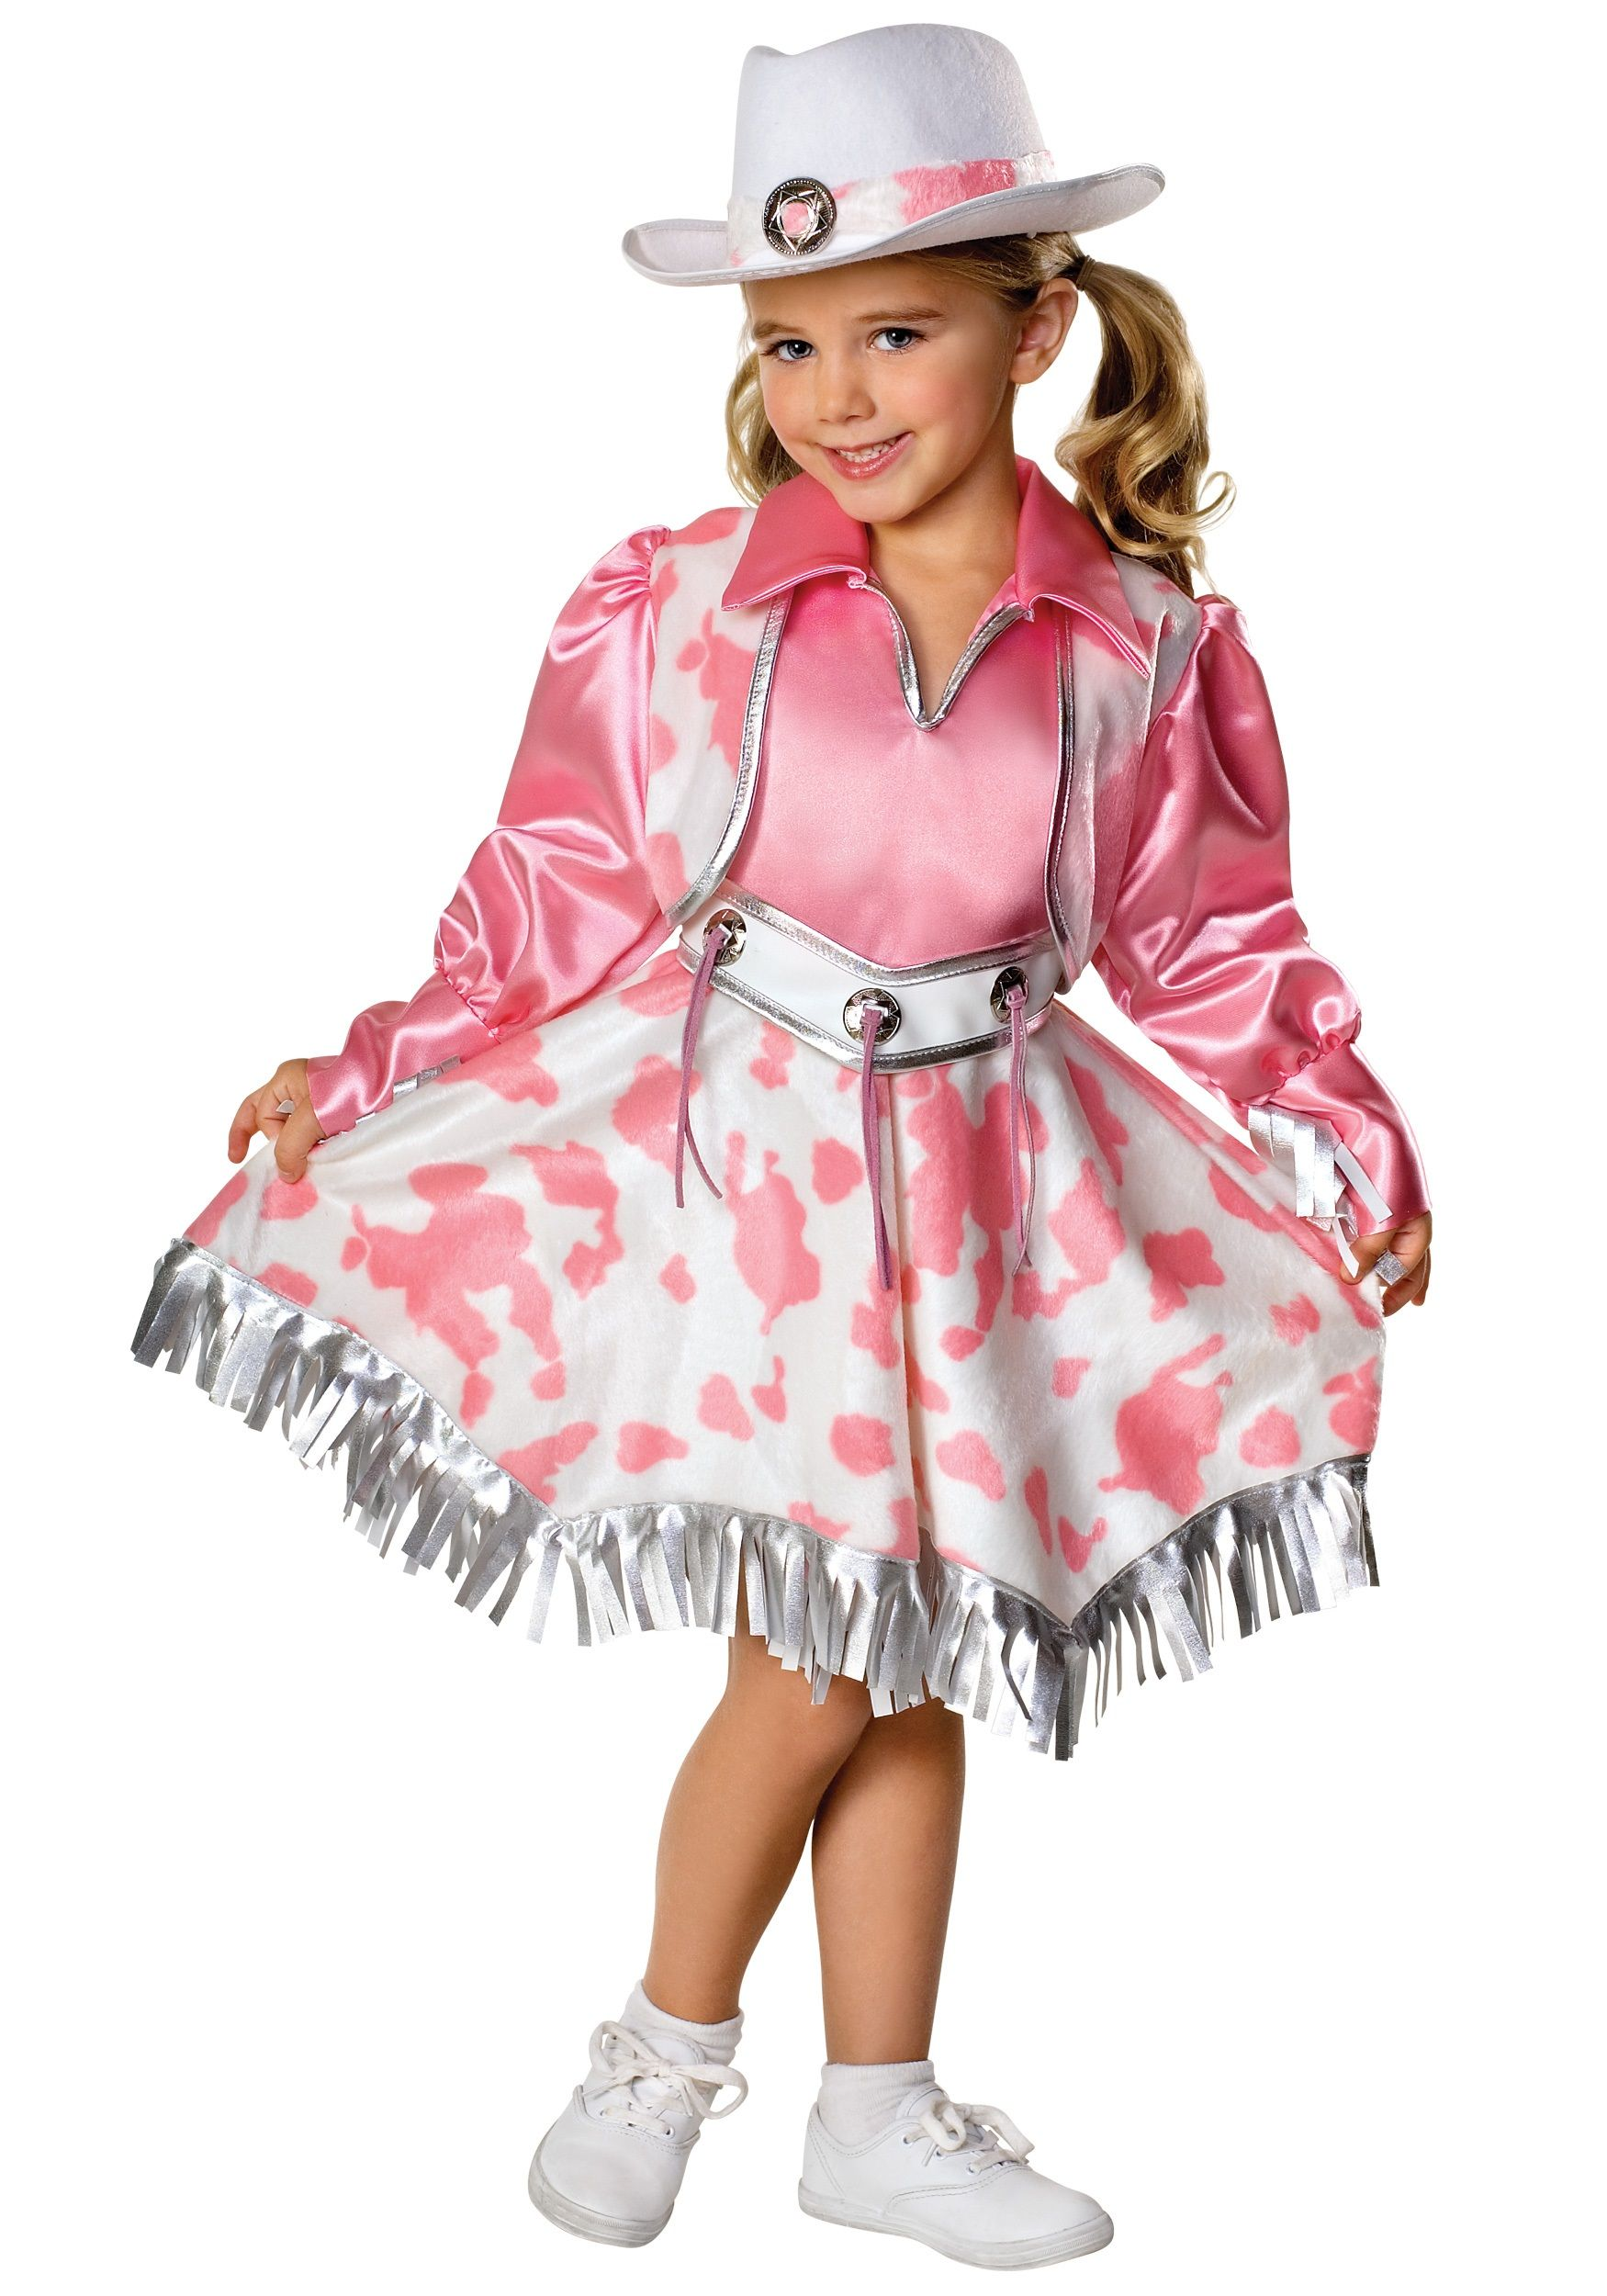 cheap western diva child costume medium 8 10 on black friday 2013 november 29 this is best buy and special discount western diva child costume medium 8 10 - Cheapest Place To Buy Halloween Costumes